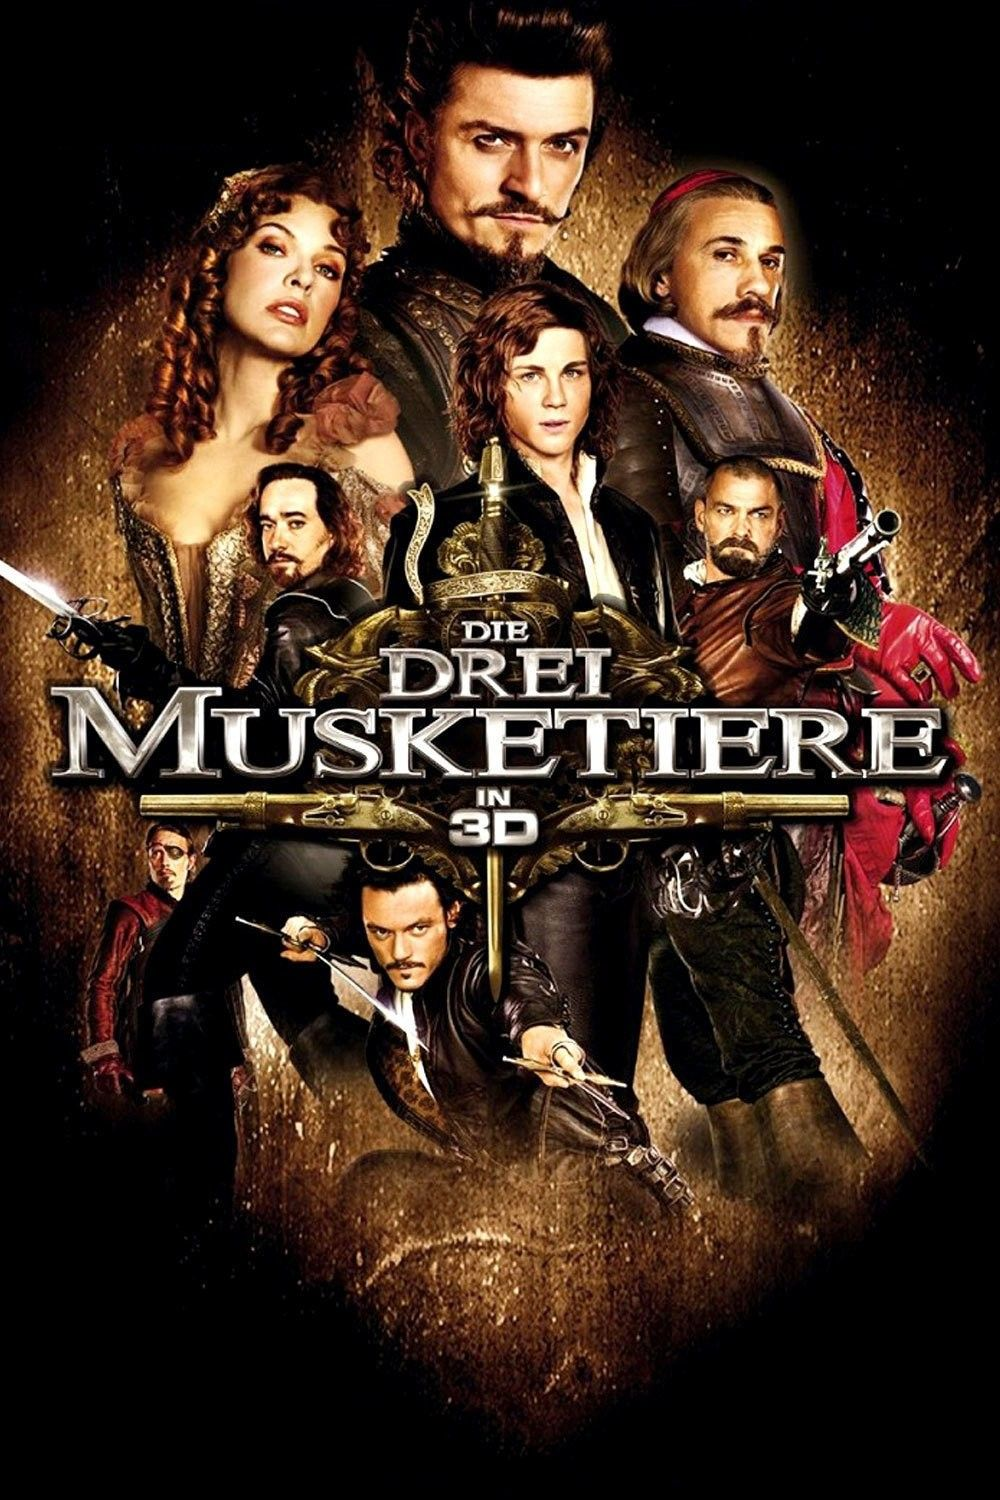 Die 3 Musketiere Film